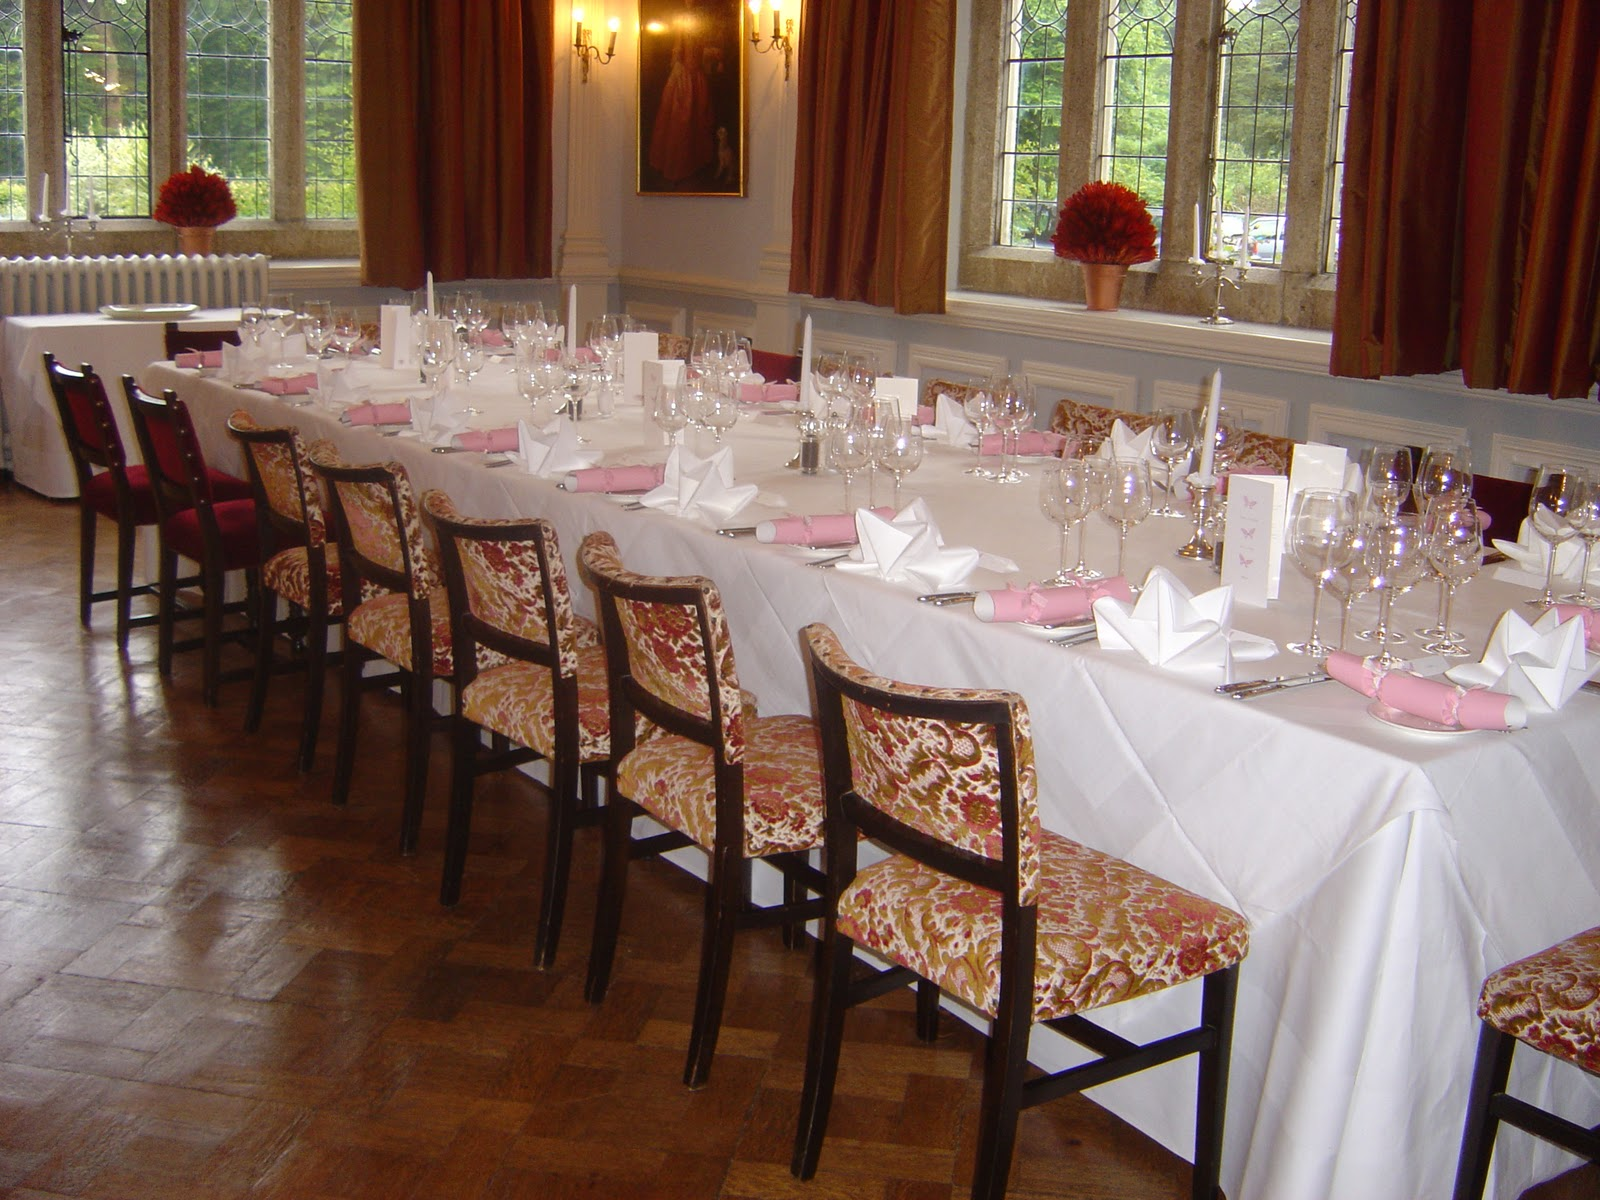 wedding chair covers devon microfiber office high back all angles and venue dressing lewtrenchard